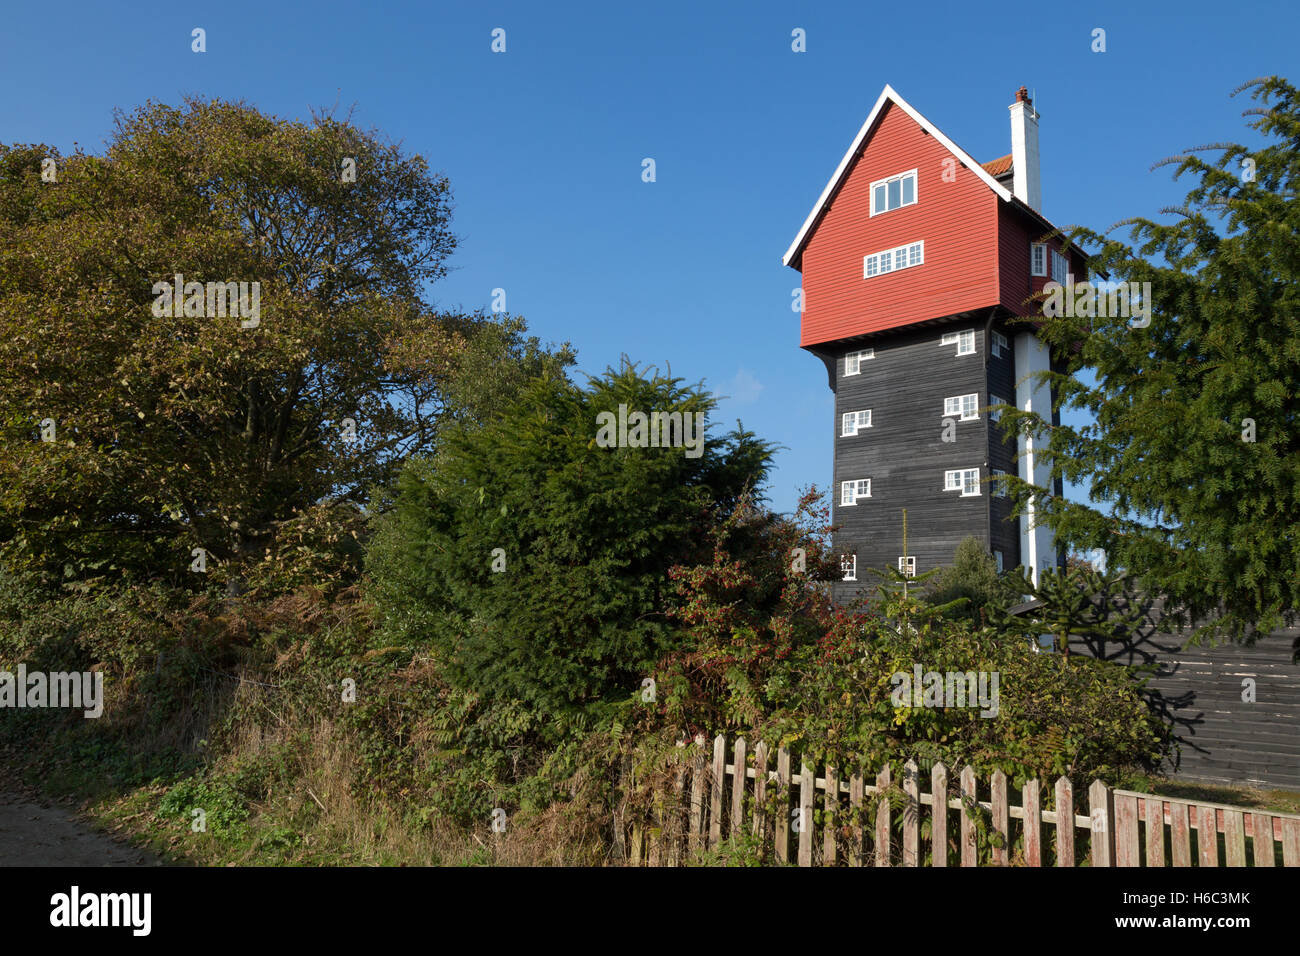 The House in the Clouds, a converted water tower, Thorpeness village, Suffolk England UK Stock Photo